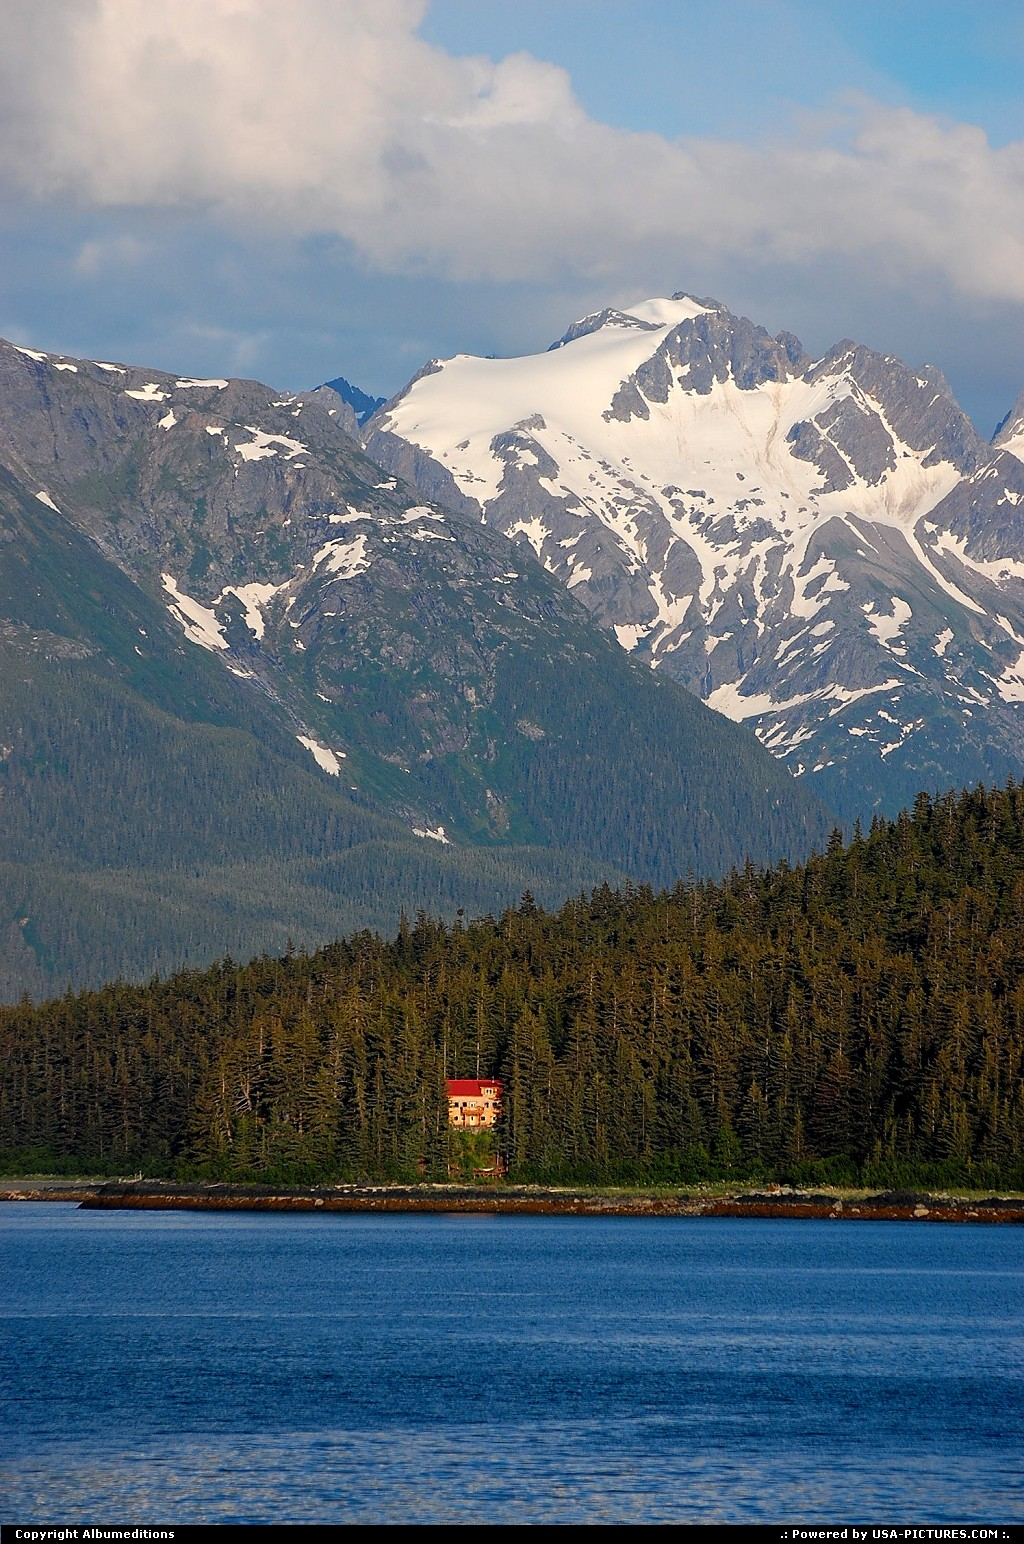 Picture by Albumeditions: Not in a City Alaska   Alaska, Landscape